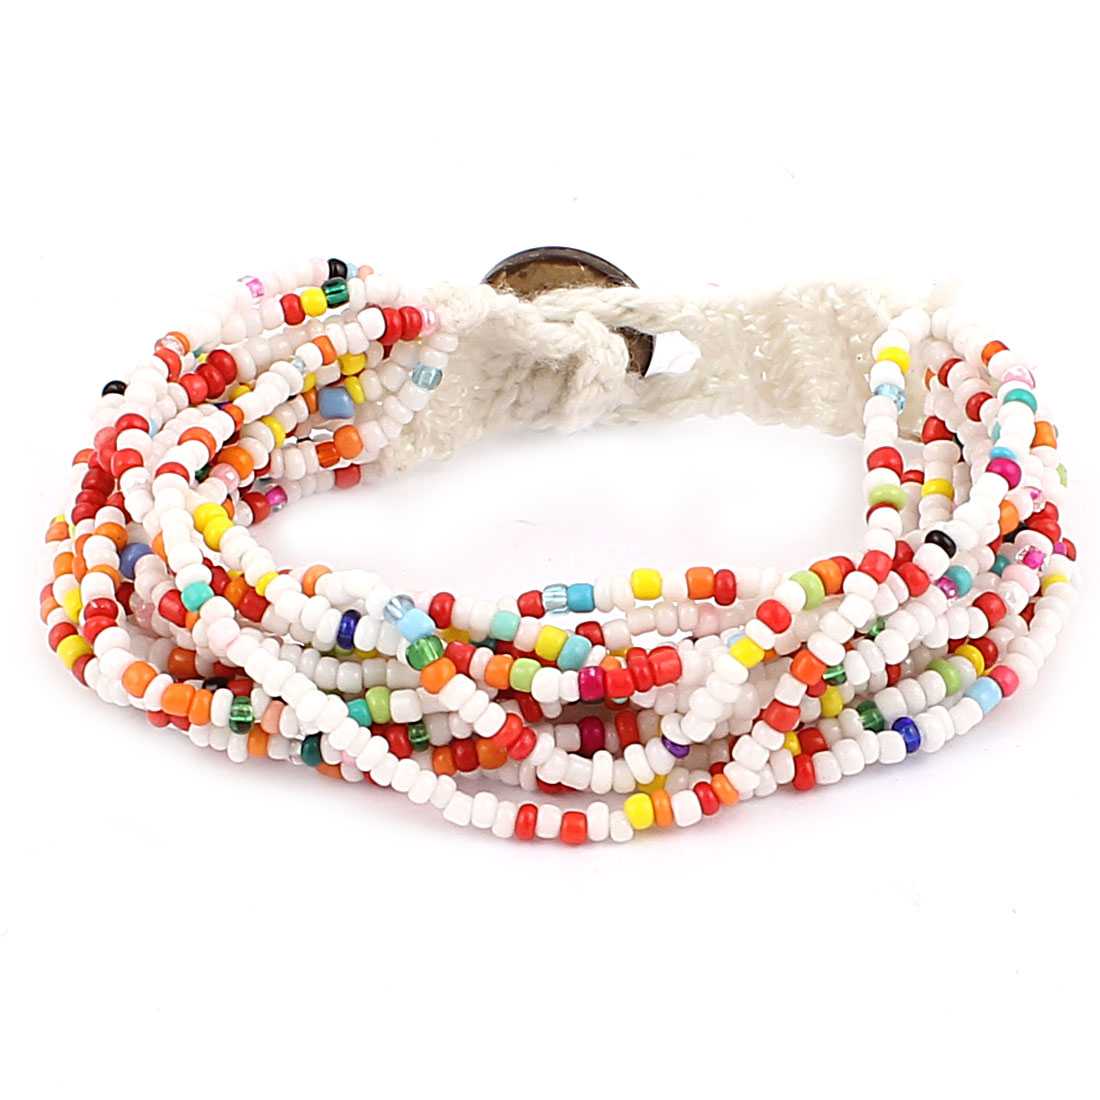 Lady Plastic Bead Multilayer Knitting Detail Wristband Bracelet Bangle Colorful